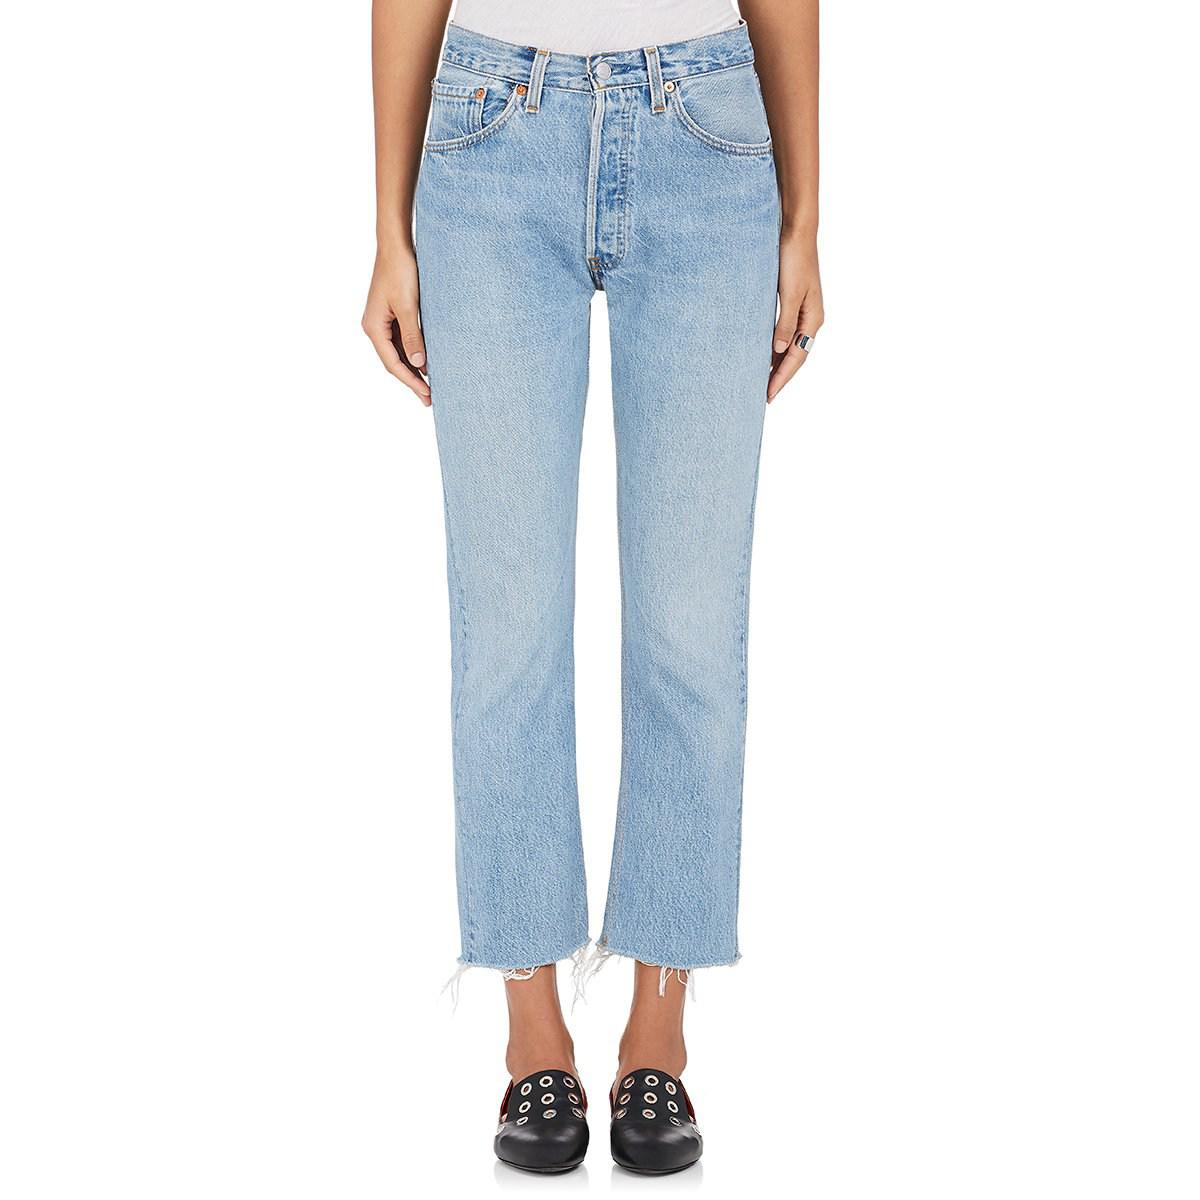 93841f23cdc81 RE DONE High Rise Crop Flare Levi s® Jeans in Blue - Lyst